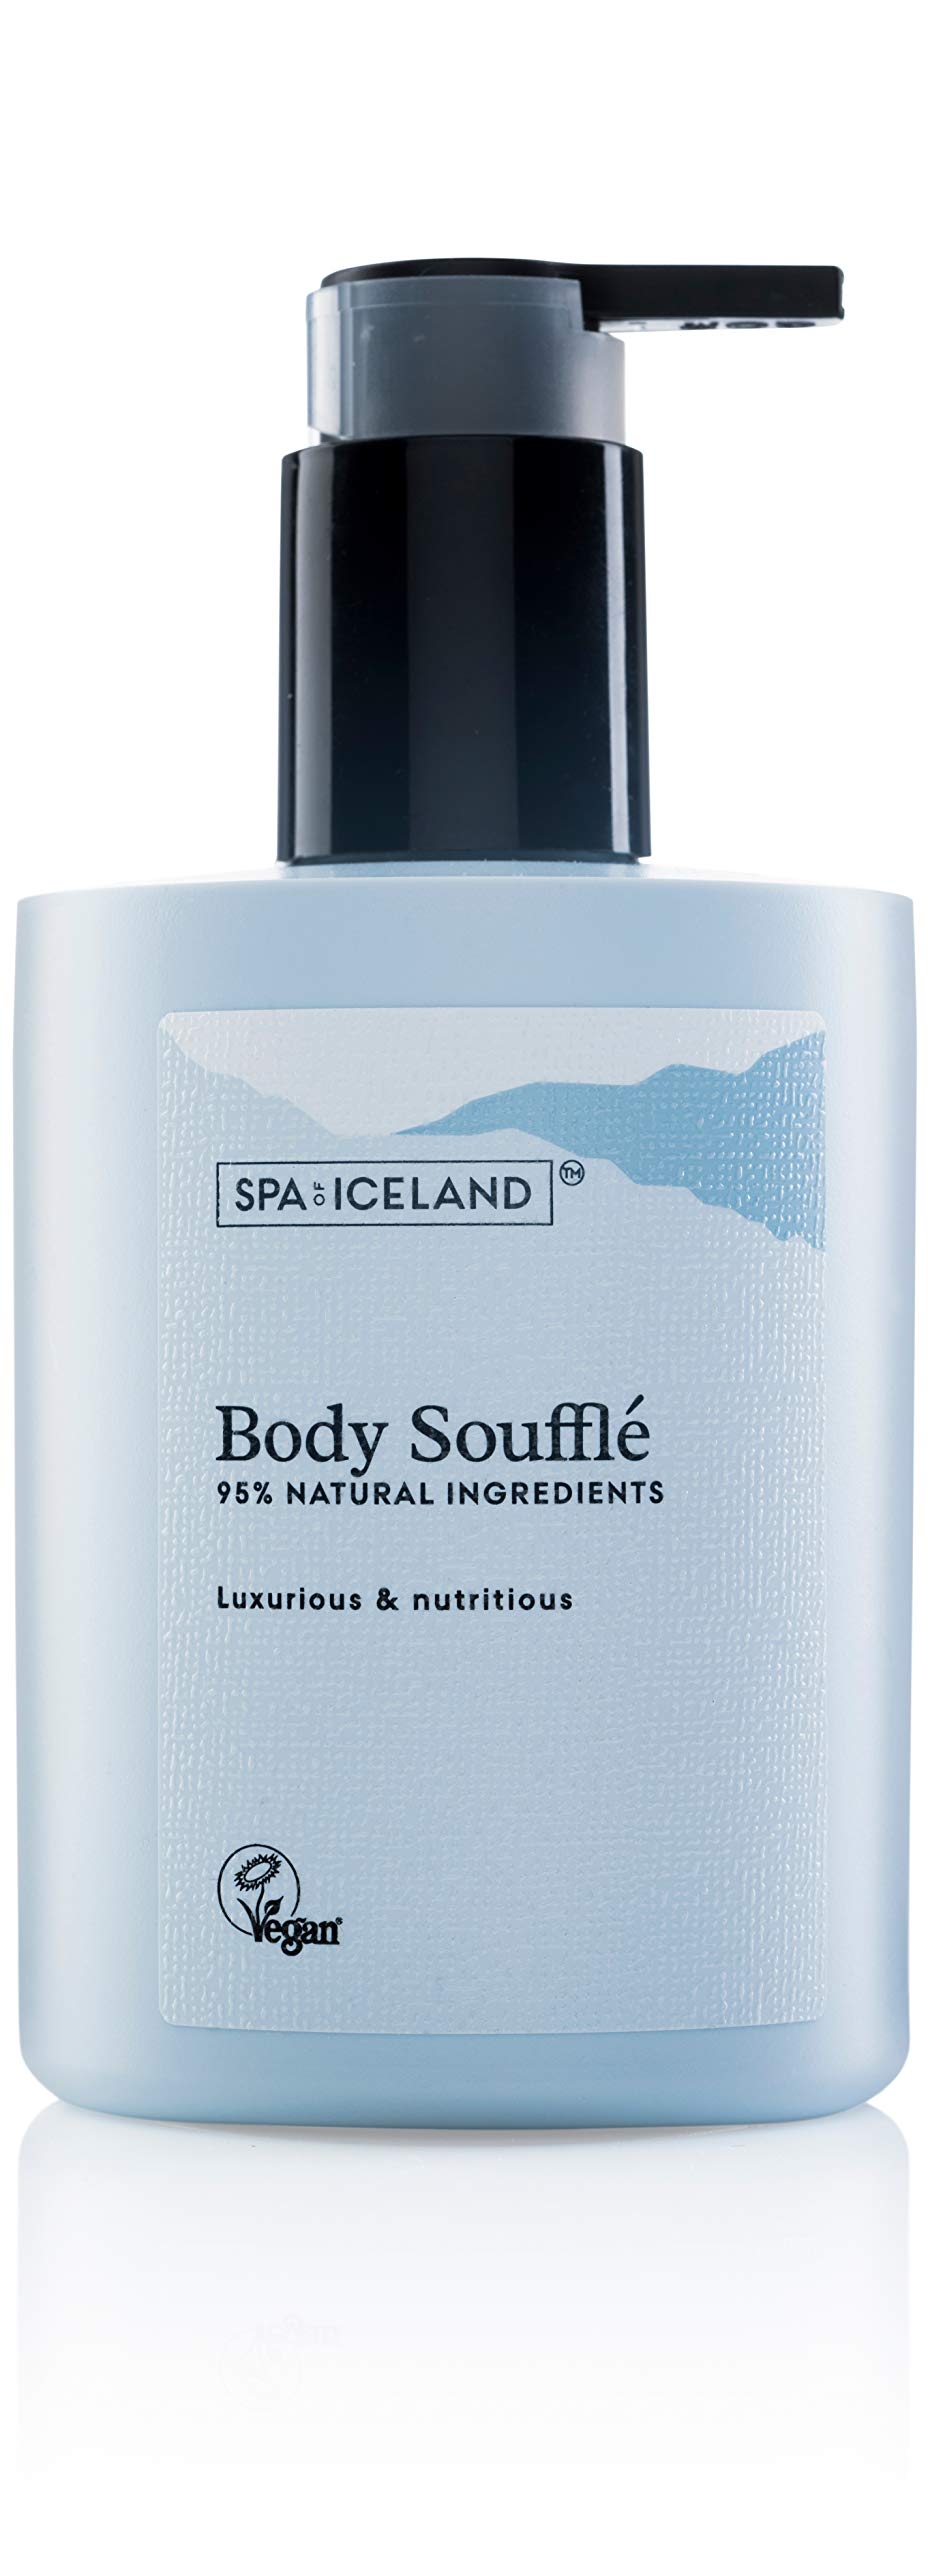 Spa Of Iceland Luxurious Body Souffle Natural Moisturizer - Nutritious Body Cream For Men & Women - Moisturizing Lotion For Dry Skin With Shea Butter, Coconut Oil, Almond Oil & Cacao Butter - 300ml by Spa of Iceland